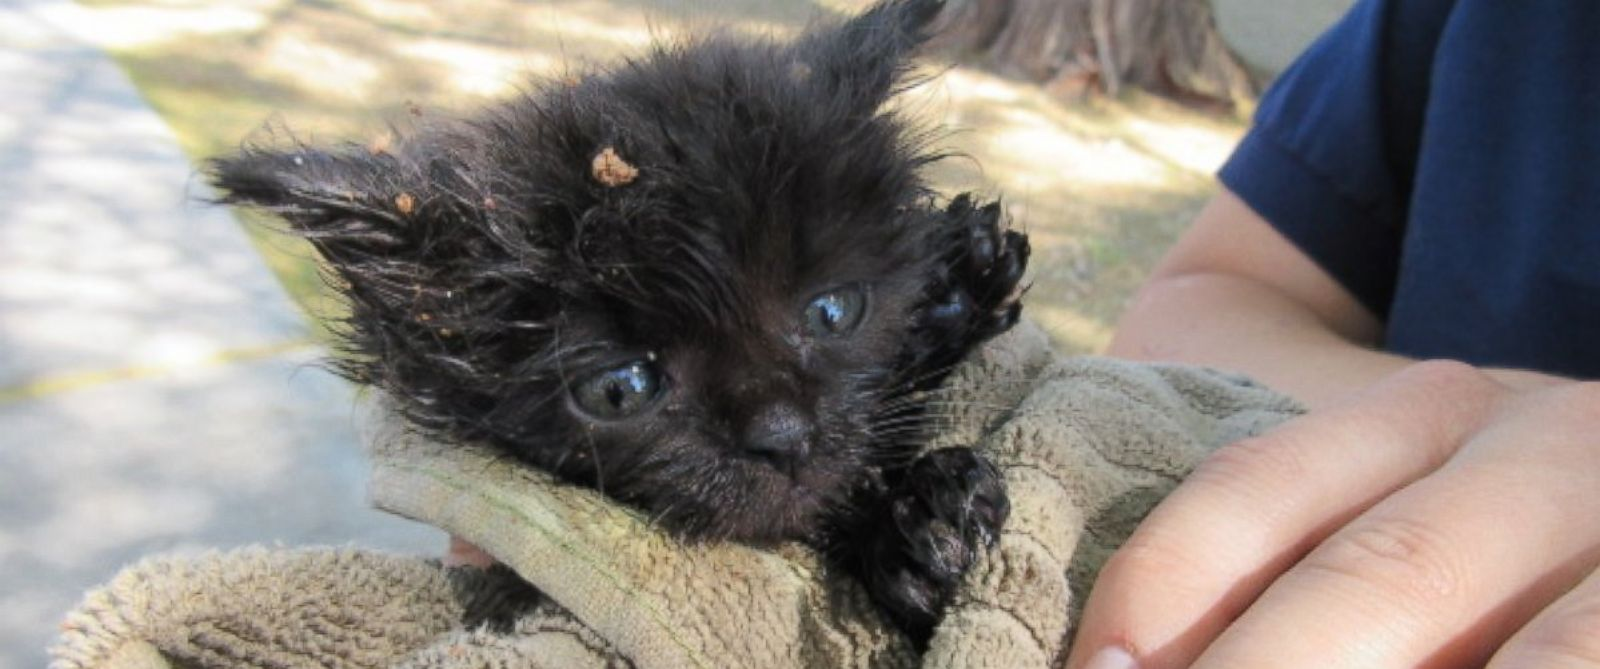 tiny kitten is now recovering after being rescued from a manhole in